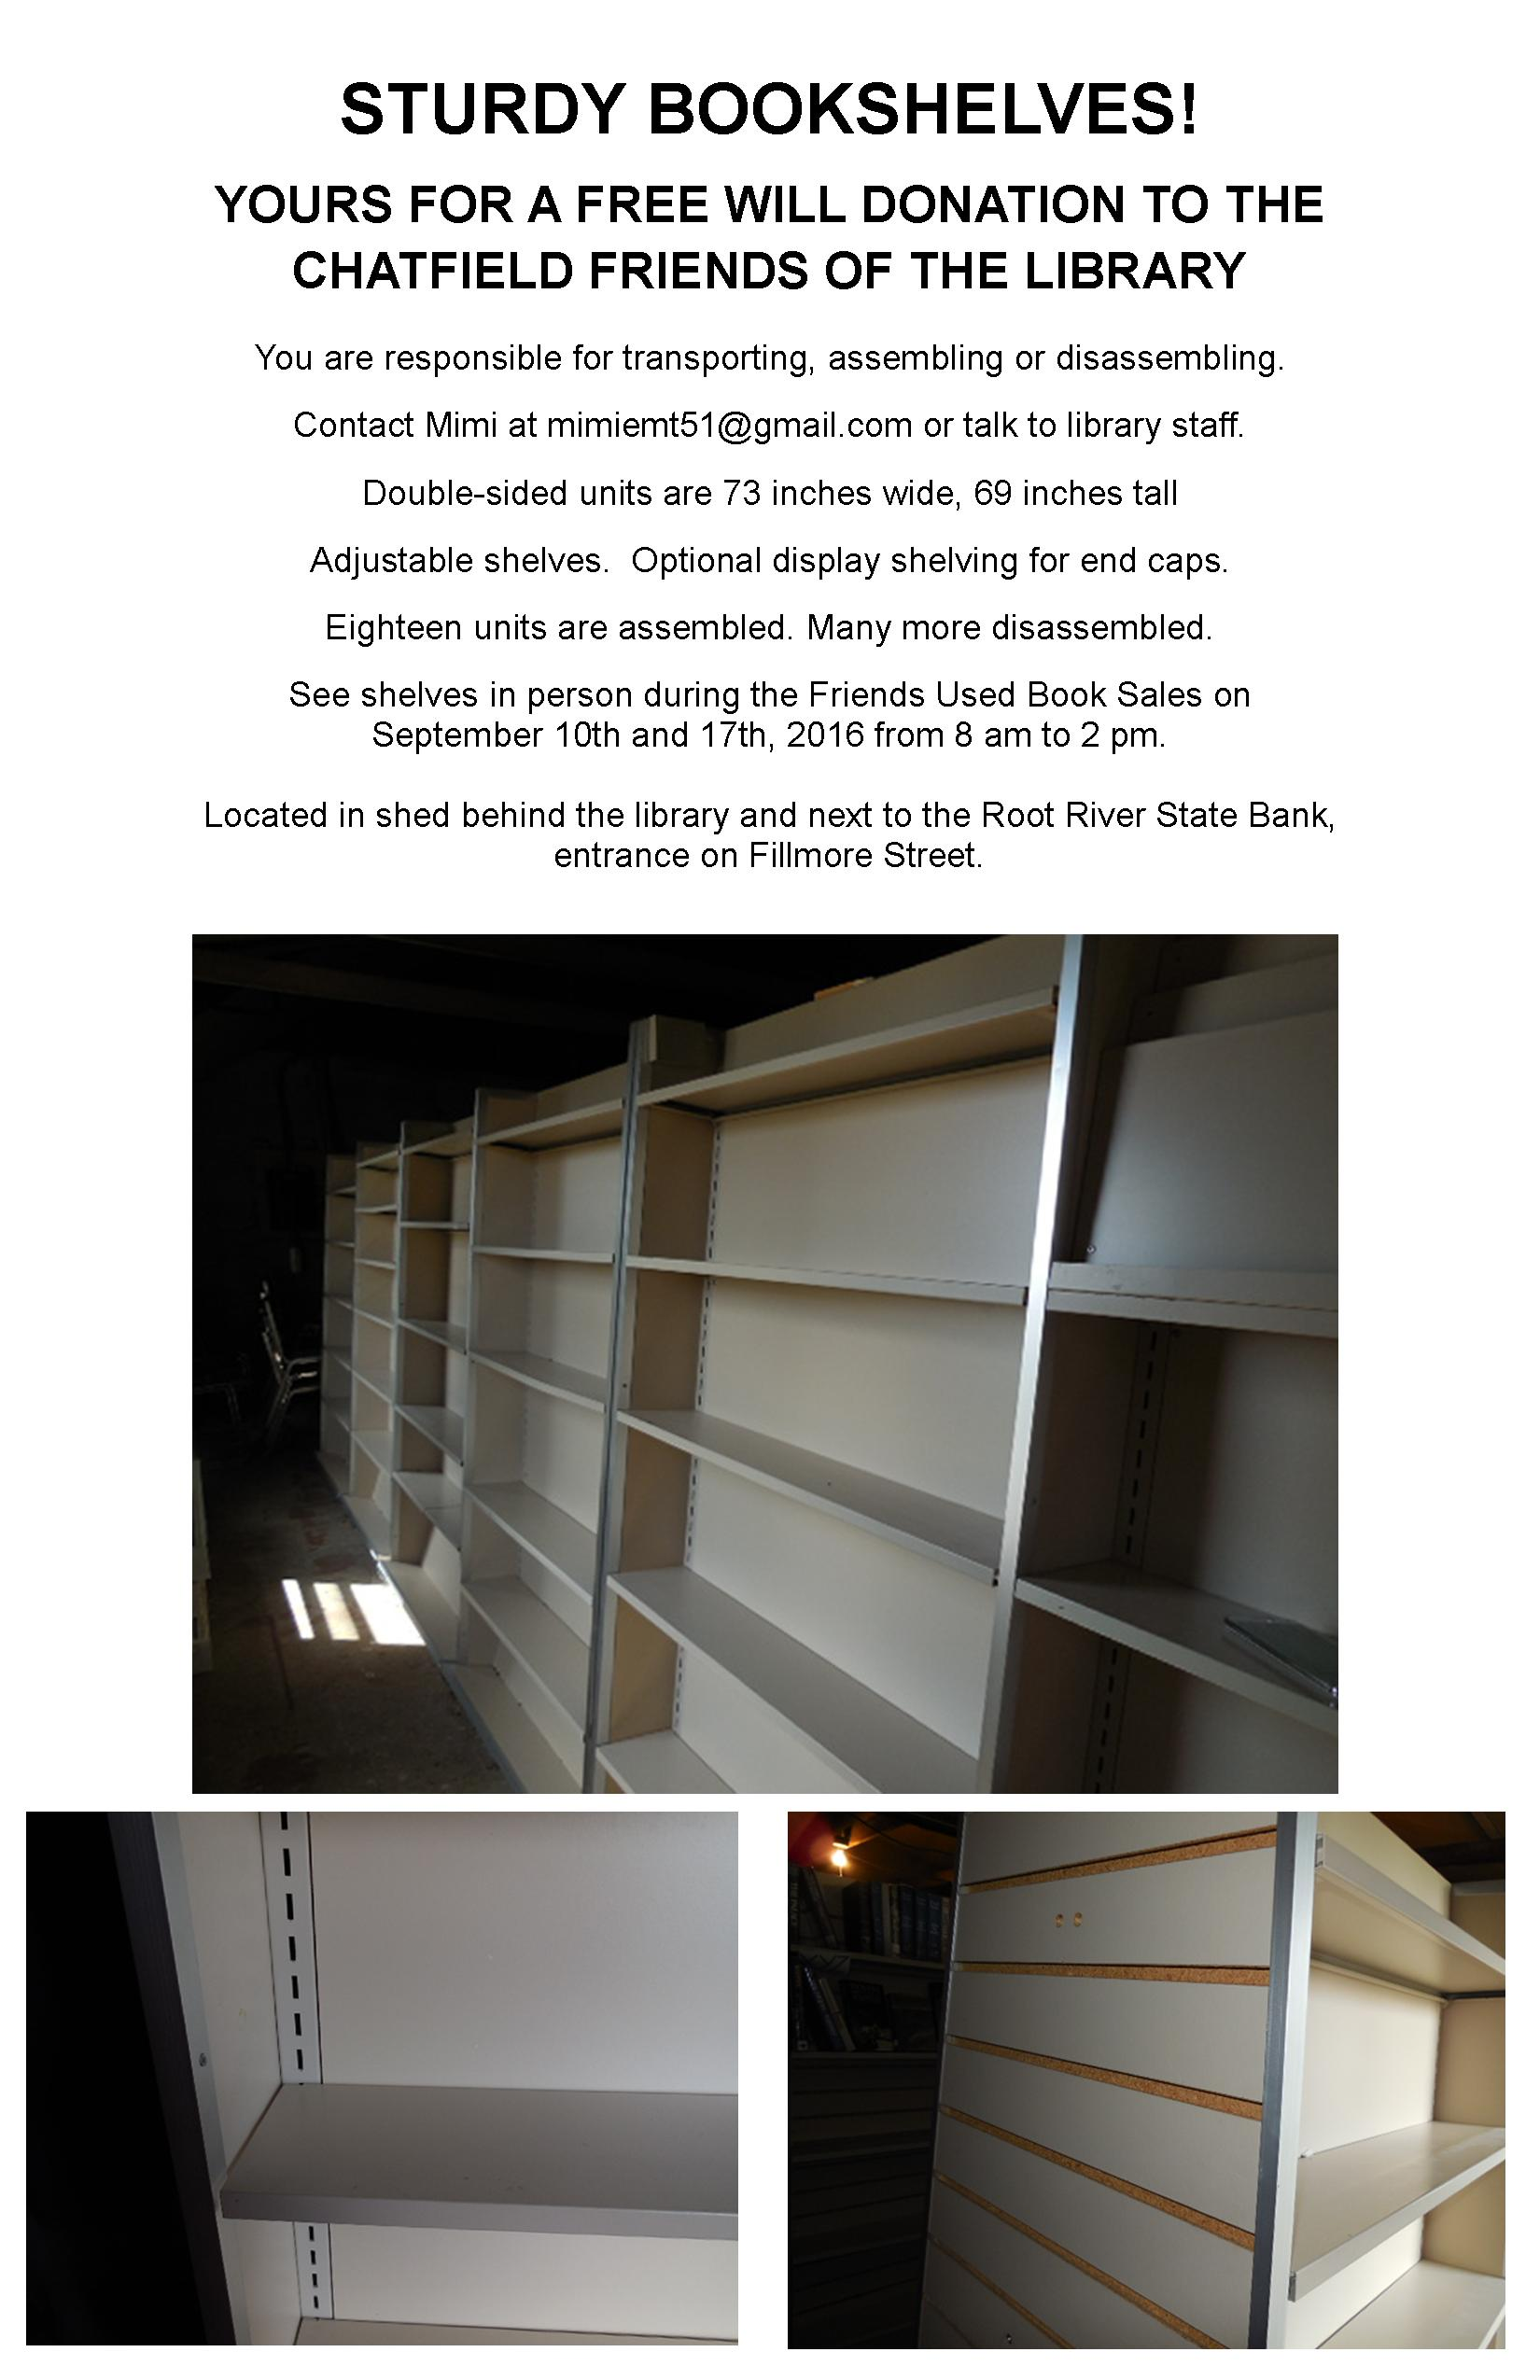 Shelving for Sale | Chatfield Public Library